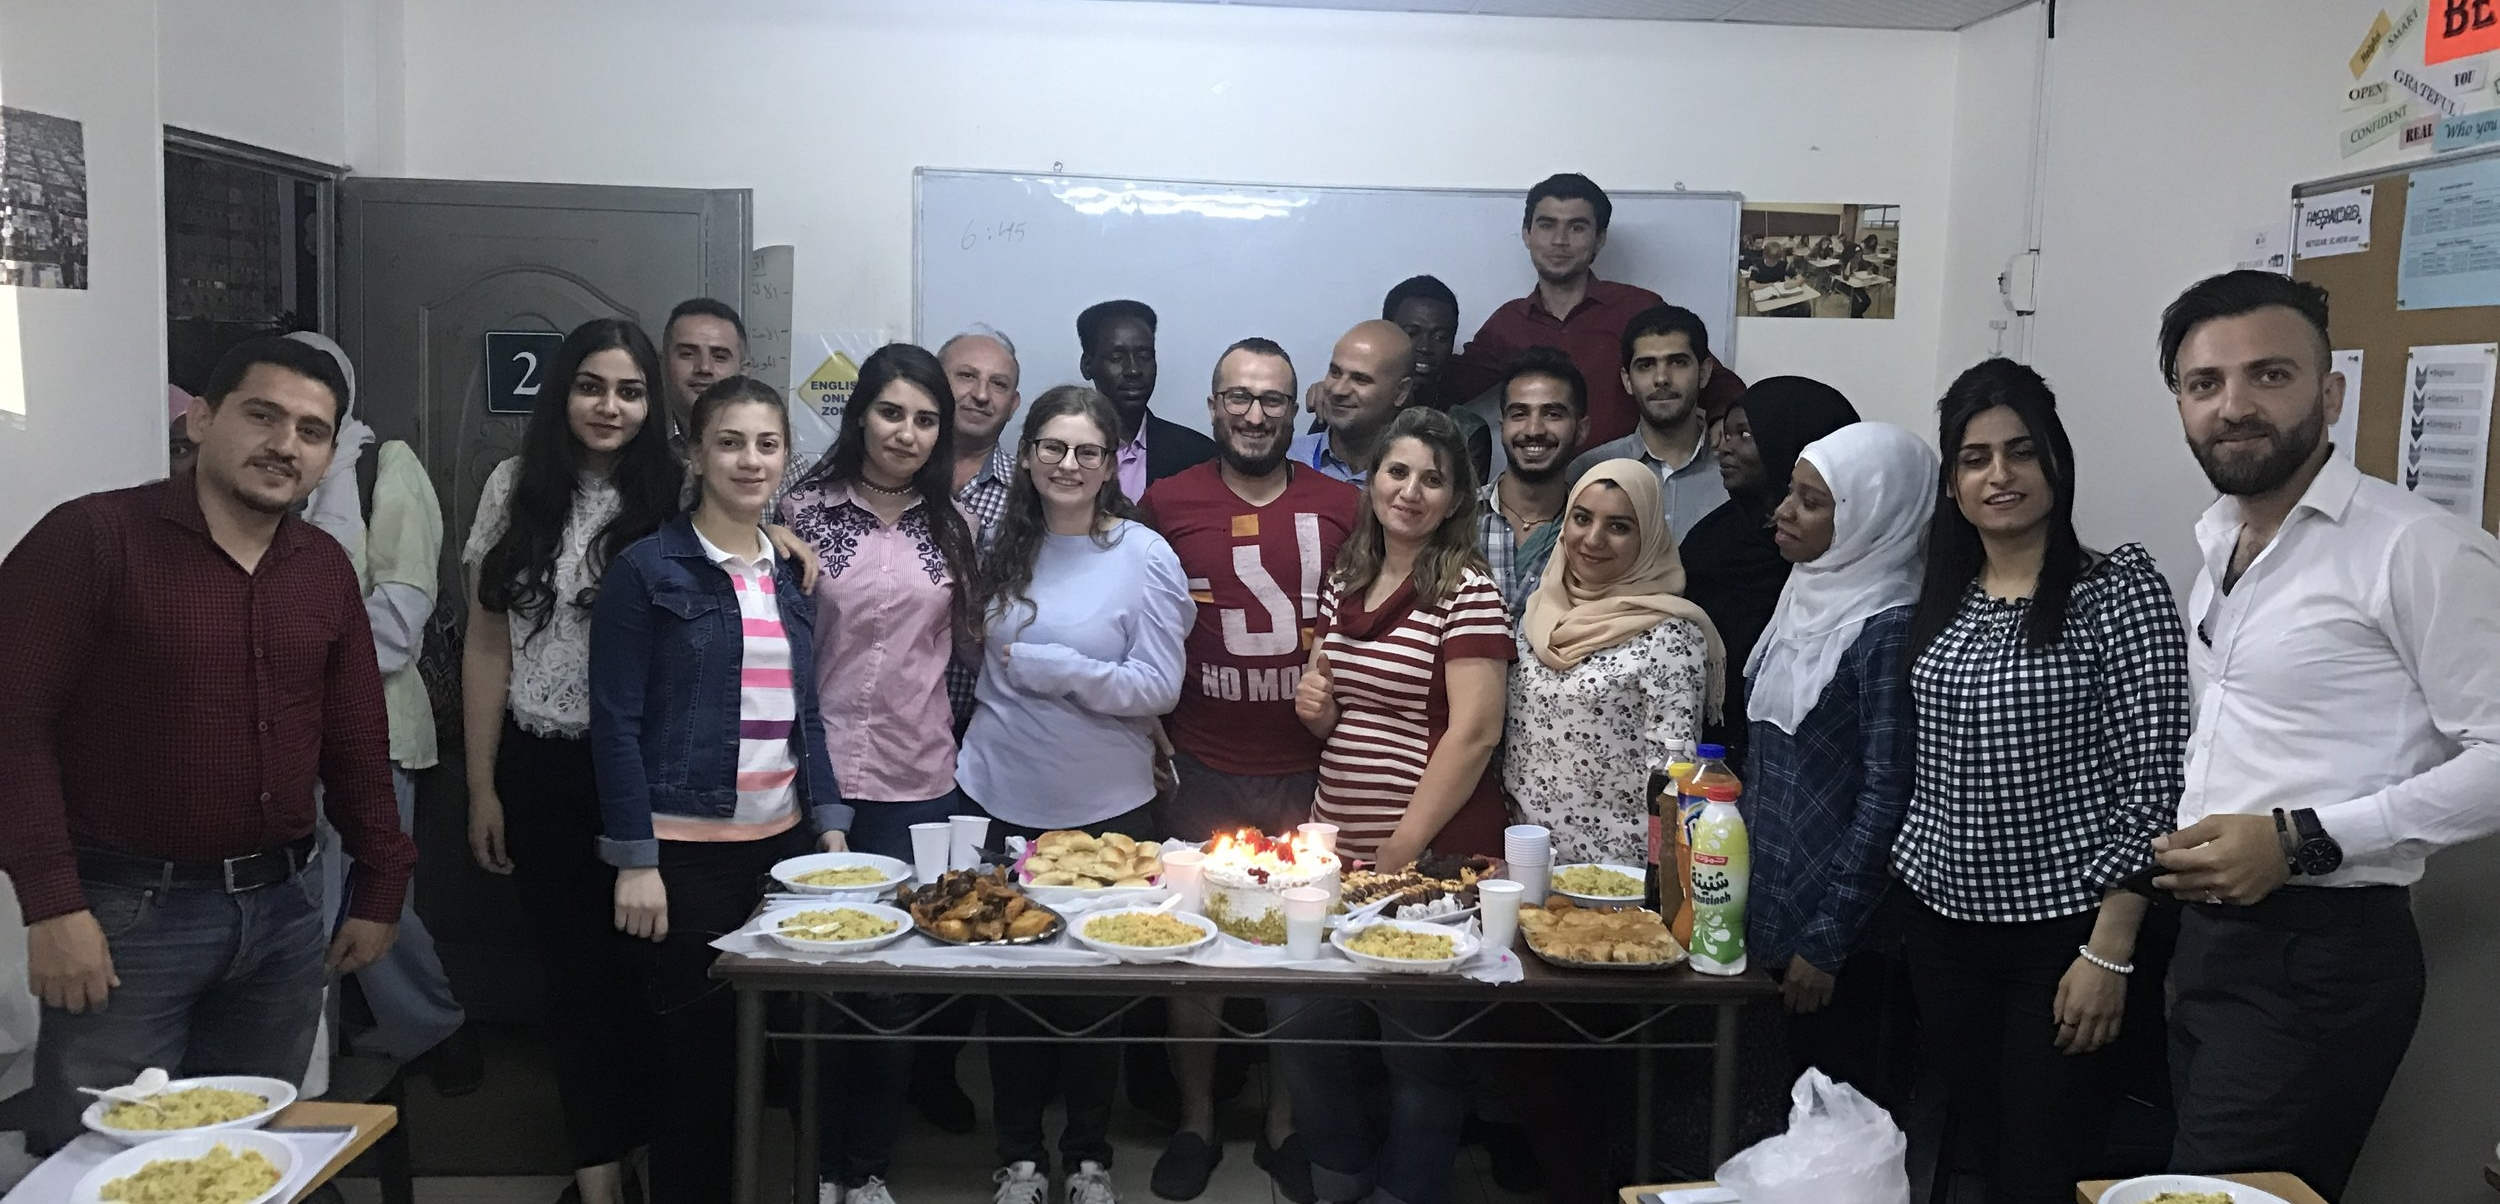 Me and the pre-intermediate class at JRS. During my time abroad, I was able to volunteer at Jesuit Refugee Services (JRS). It was by far my favorite and most fulfilling experience in Jordan. I shadowed two English teachers and helped teach two English classes, but I learned much more from the JRS community than they learned from me. I was nervous at first. I didn't know how people would react to some random American girl with virtually no teaching experience, let alone life experience, joining the class. However, they were the kindest, warmest, and most welcoming people I have ever had the pleasure to know. I will never forget the amazing people I met! Photo credit: Samantha Manno, 2018